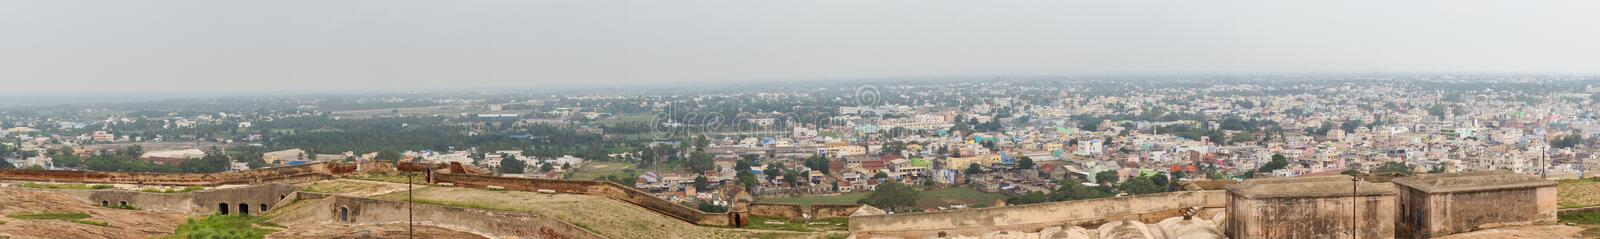 Panorama of Dindigul seen from Rock Fort. Dindigul, India - October 23, 2013: Panoramic shot over the region that surrounds Dindigul Rock Fort. Rural area and stock photos